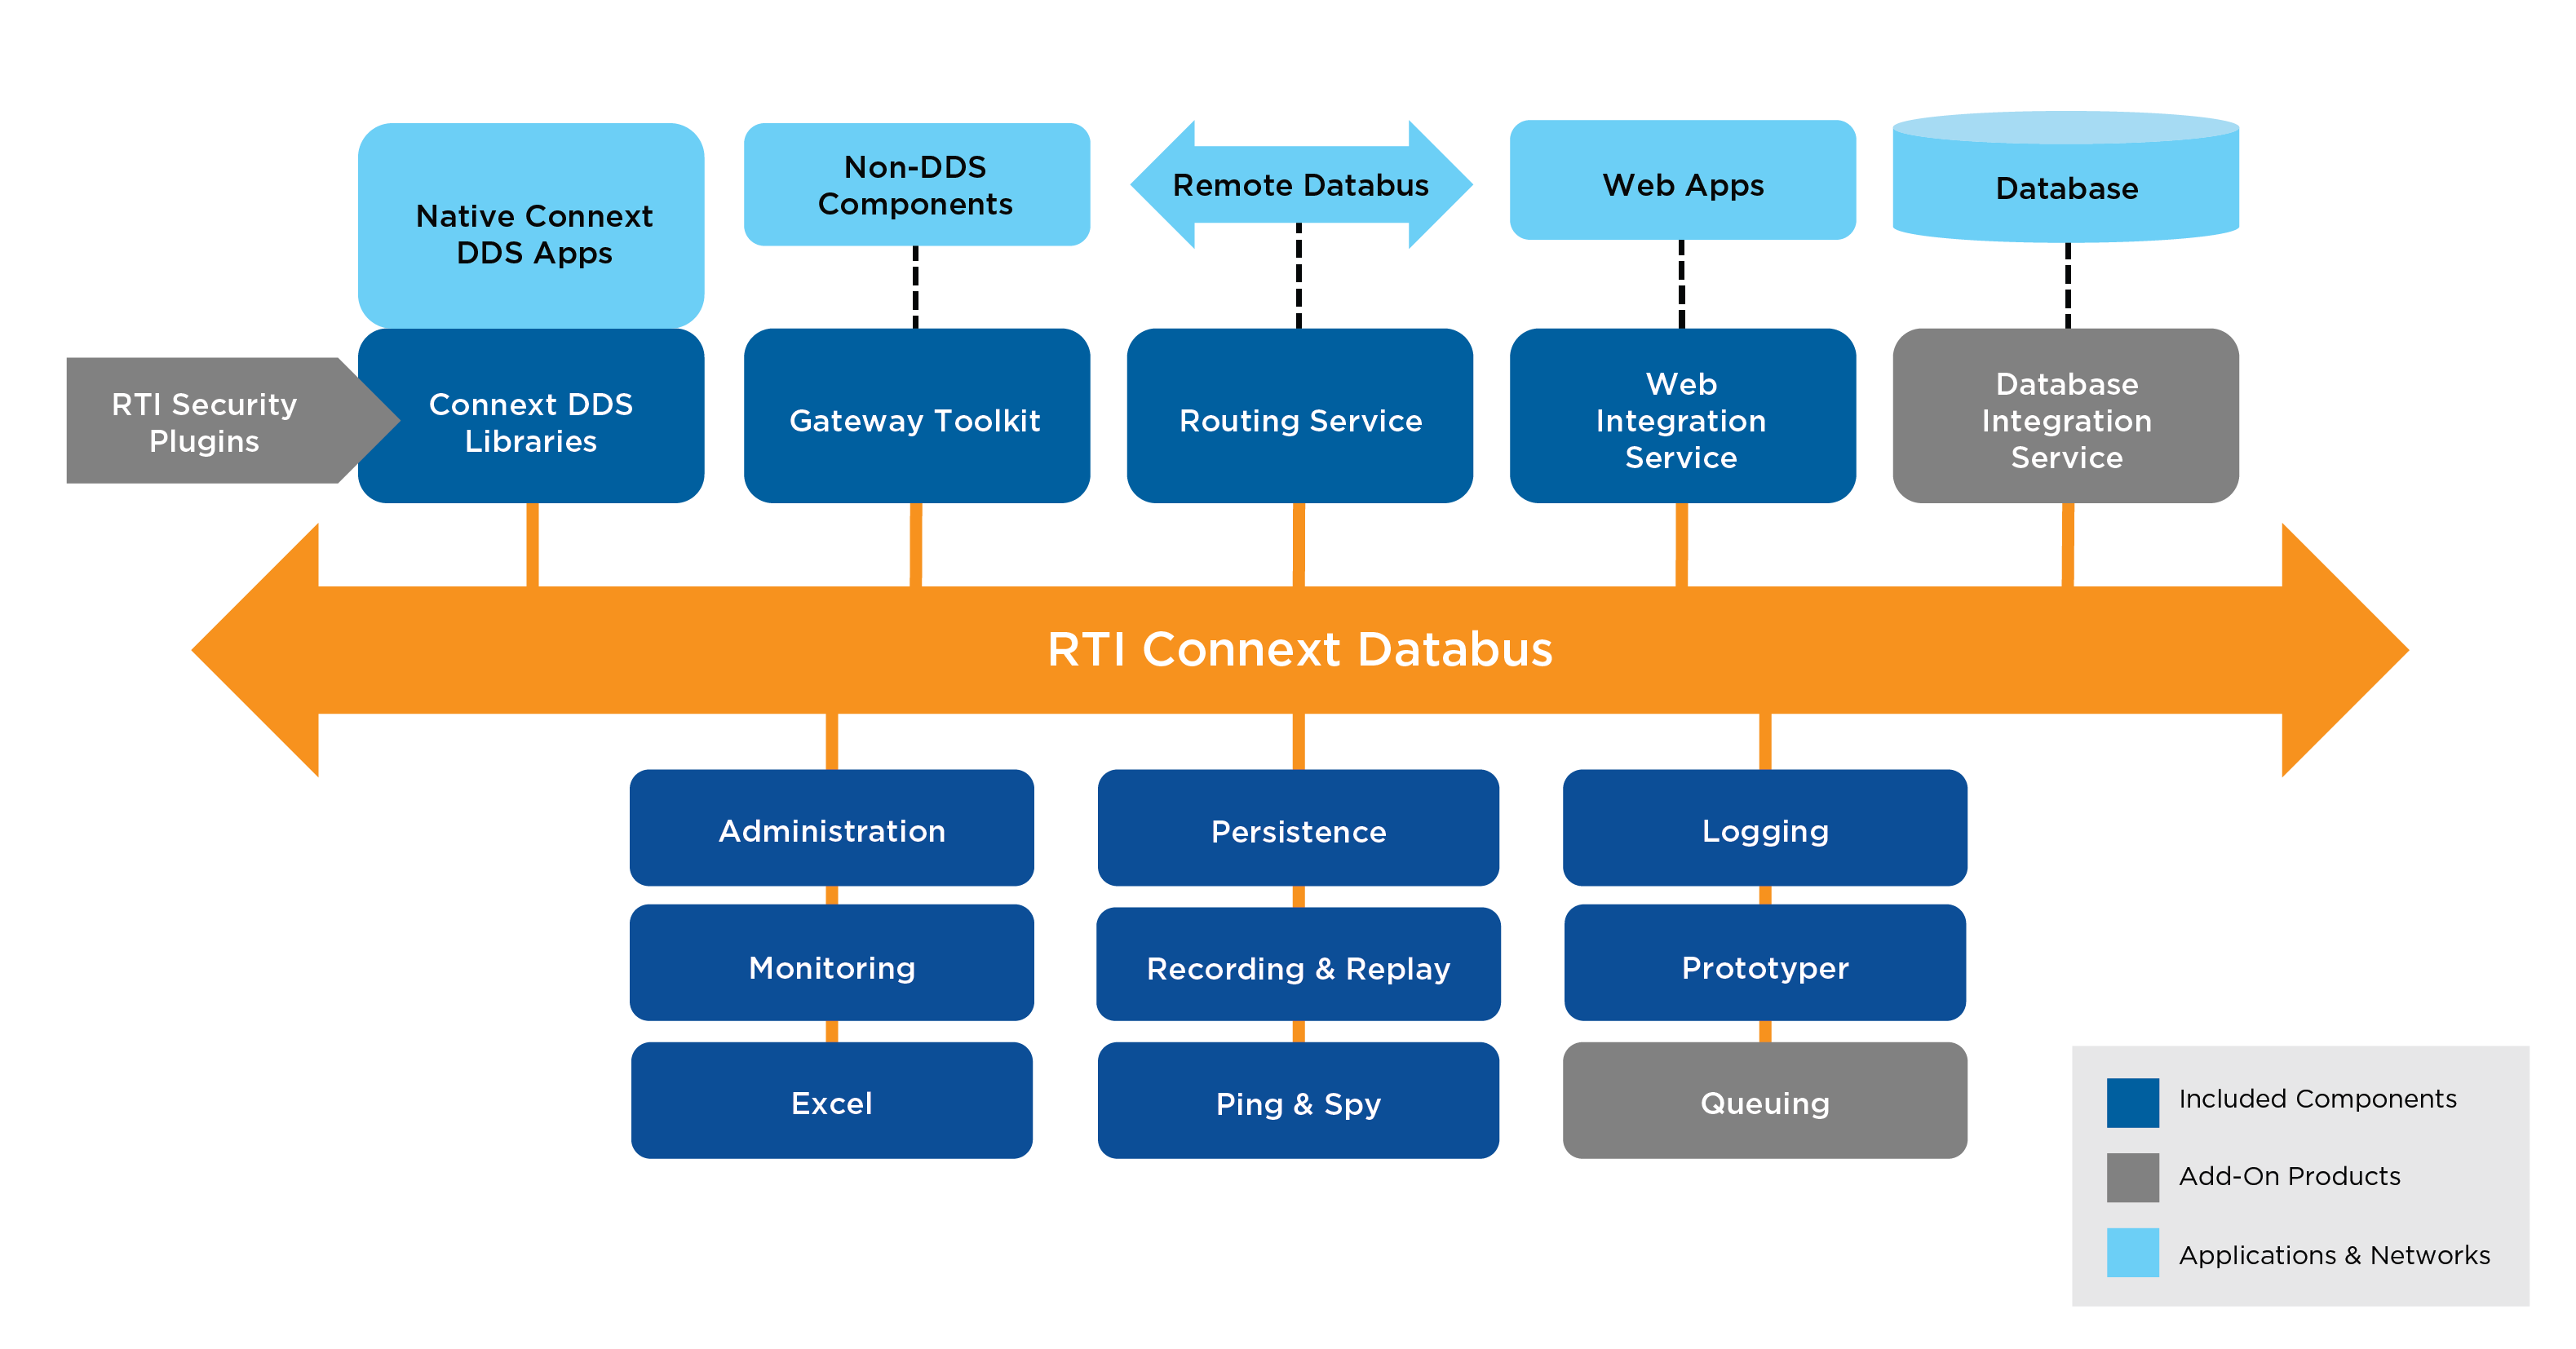 RTI_Diagram_Connext-DDS-Professional_V0_0917 (1).png